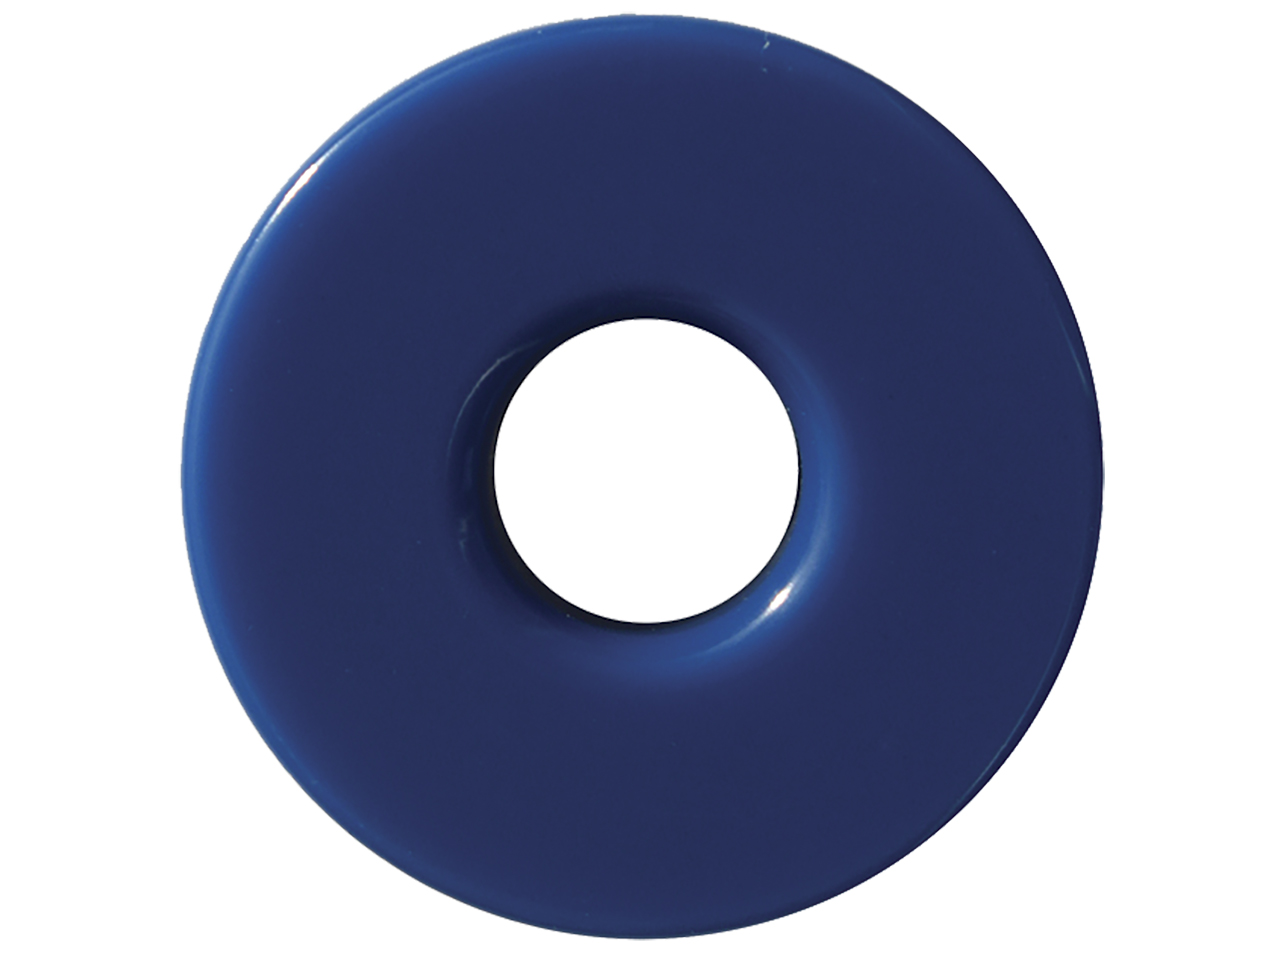 Wehrs Open Style Pull Bar Puck (Blue - 70 Durometer)